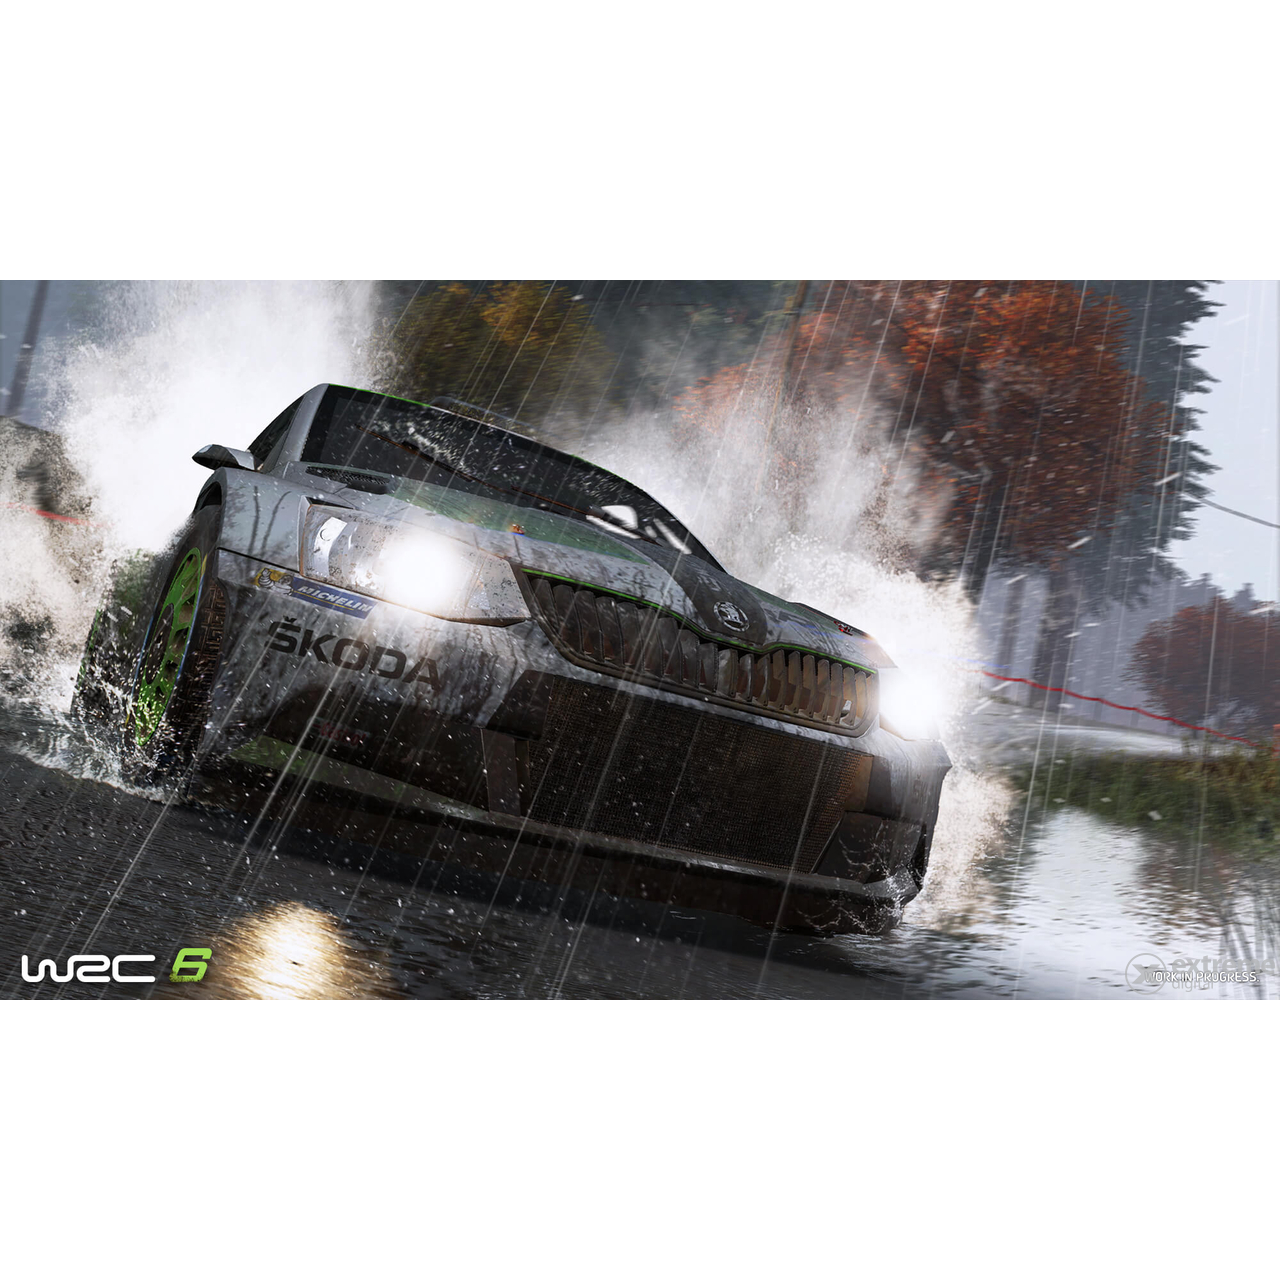 fia world rally championship 6 wrc 6 xbox one. Black Bedroom Furniture Sets. Home Design Ideas